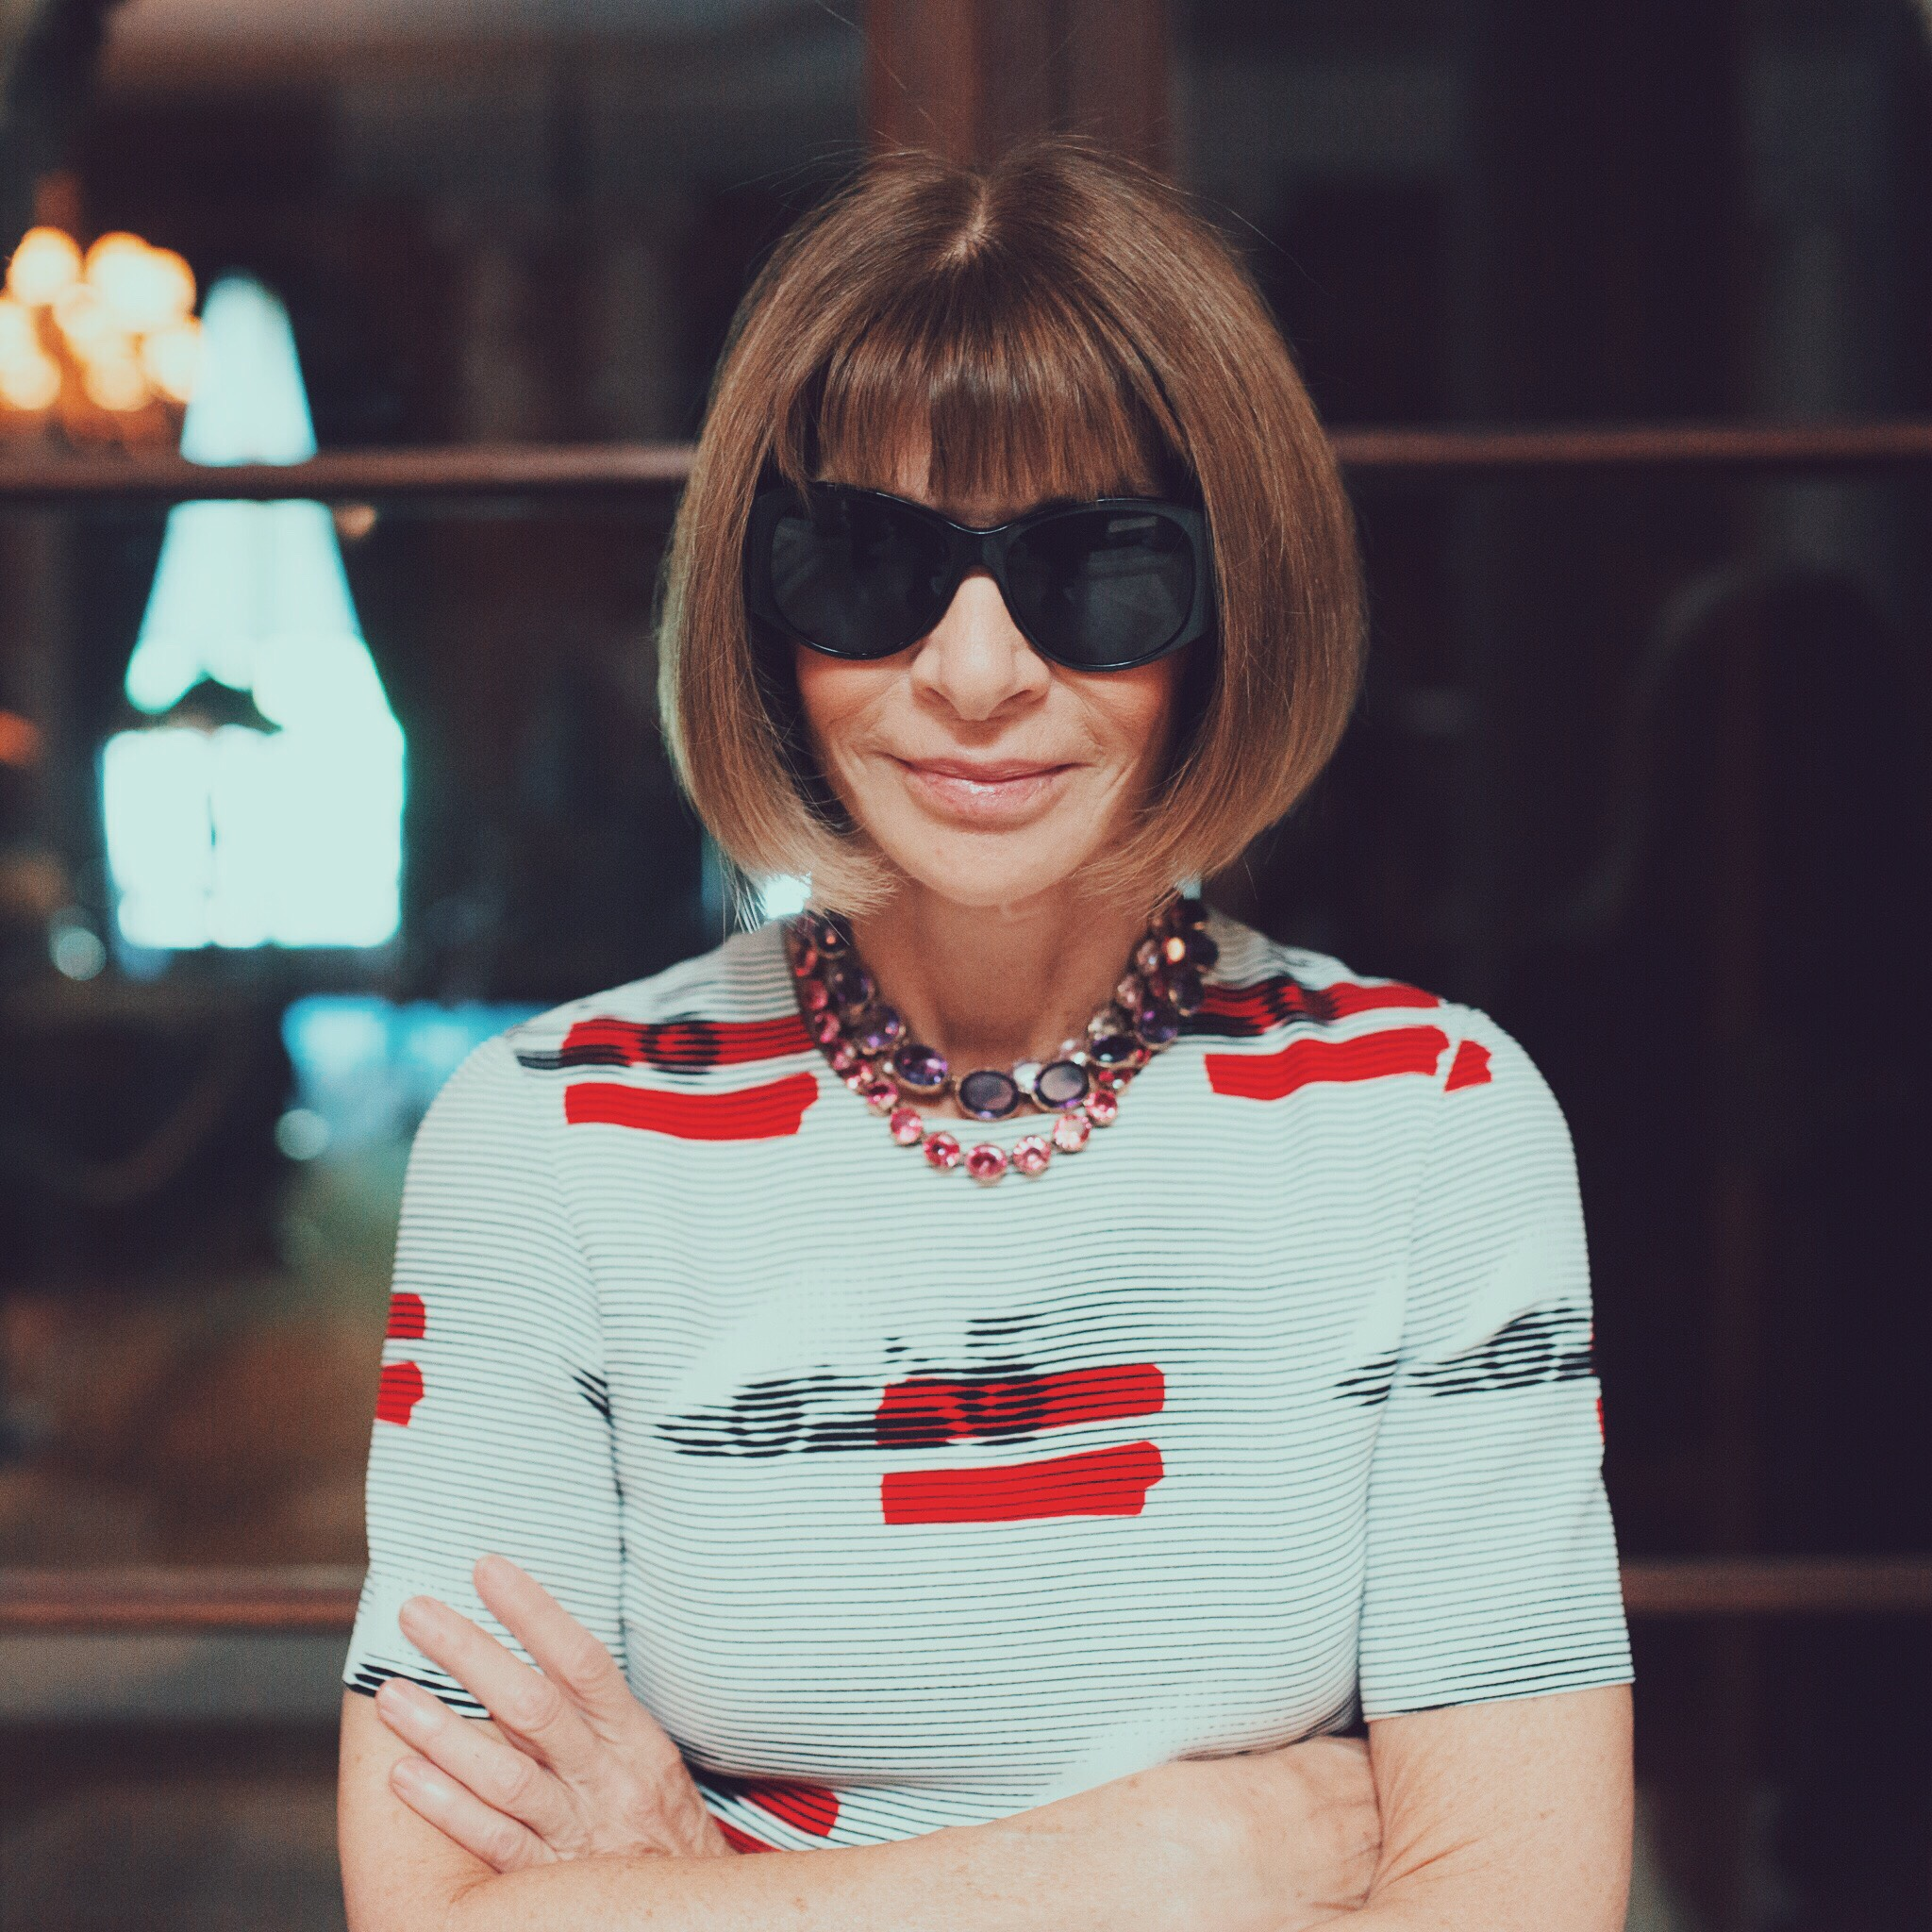 anna wintour - vsco ss16 yearbook